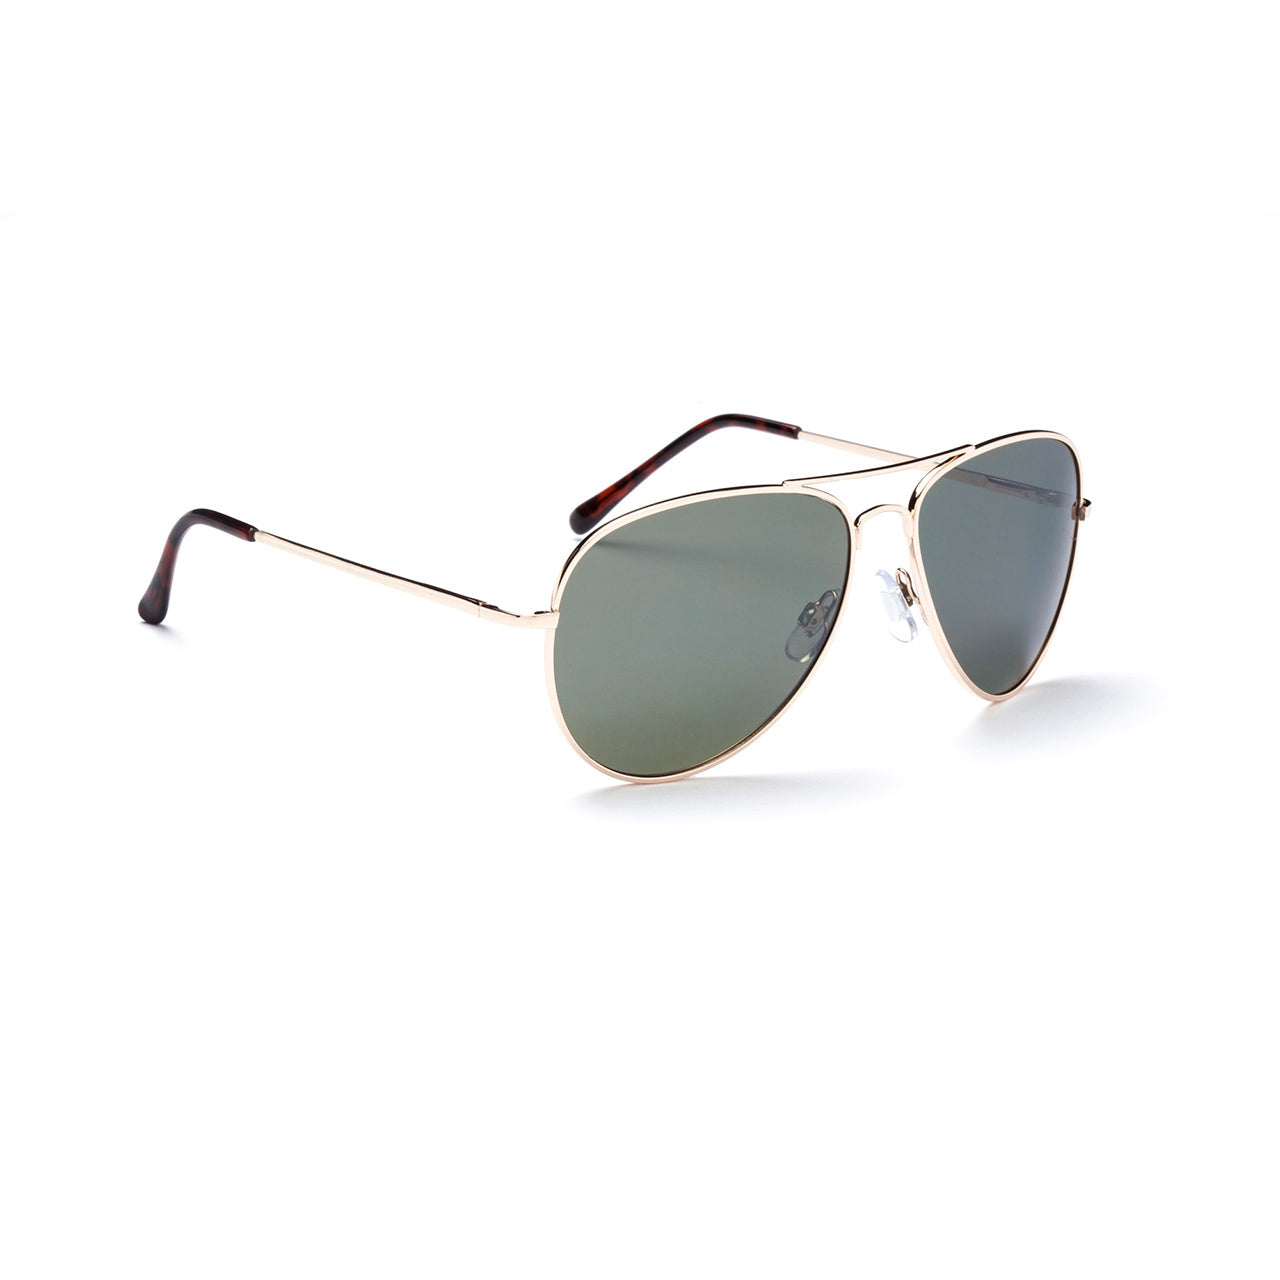 Optic Nerve Estrada Gold Sunglasses